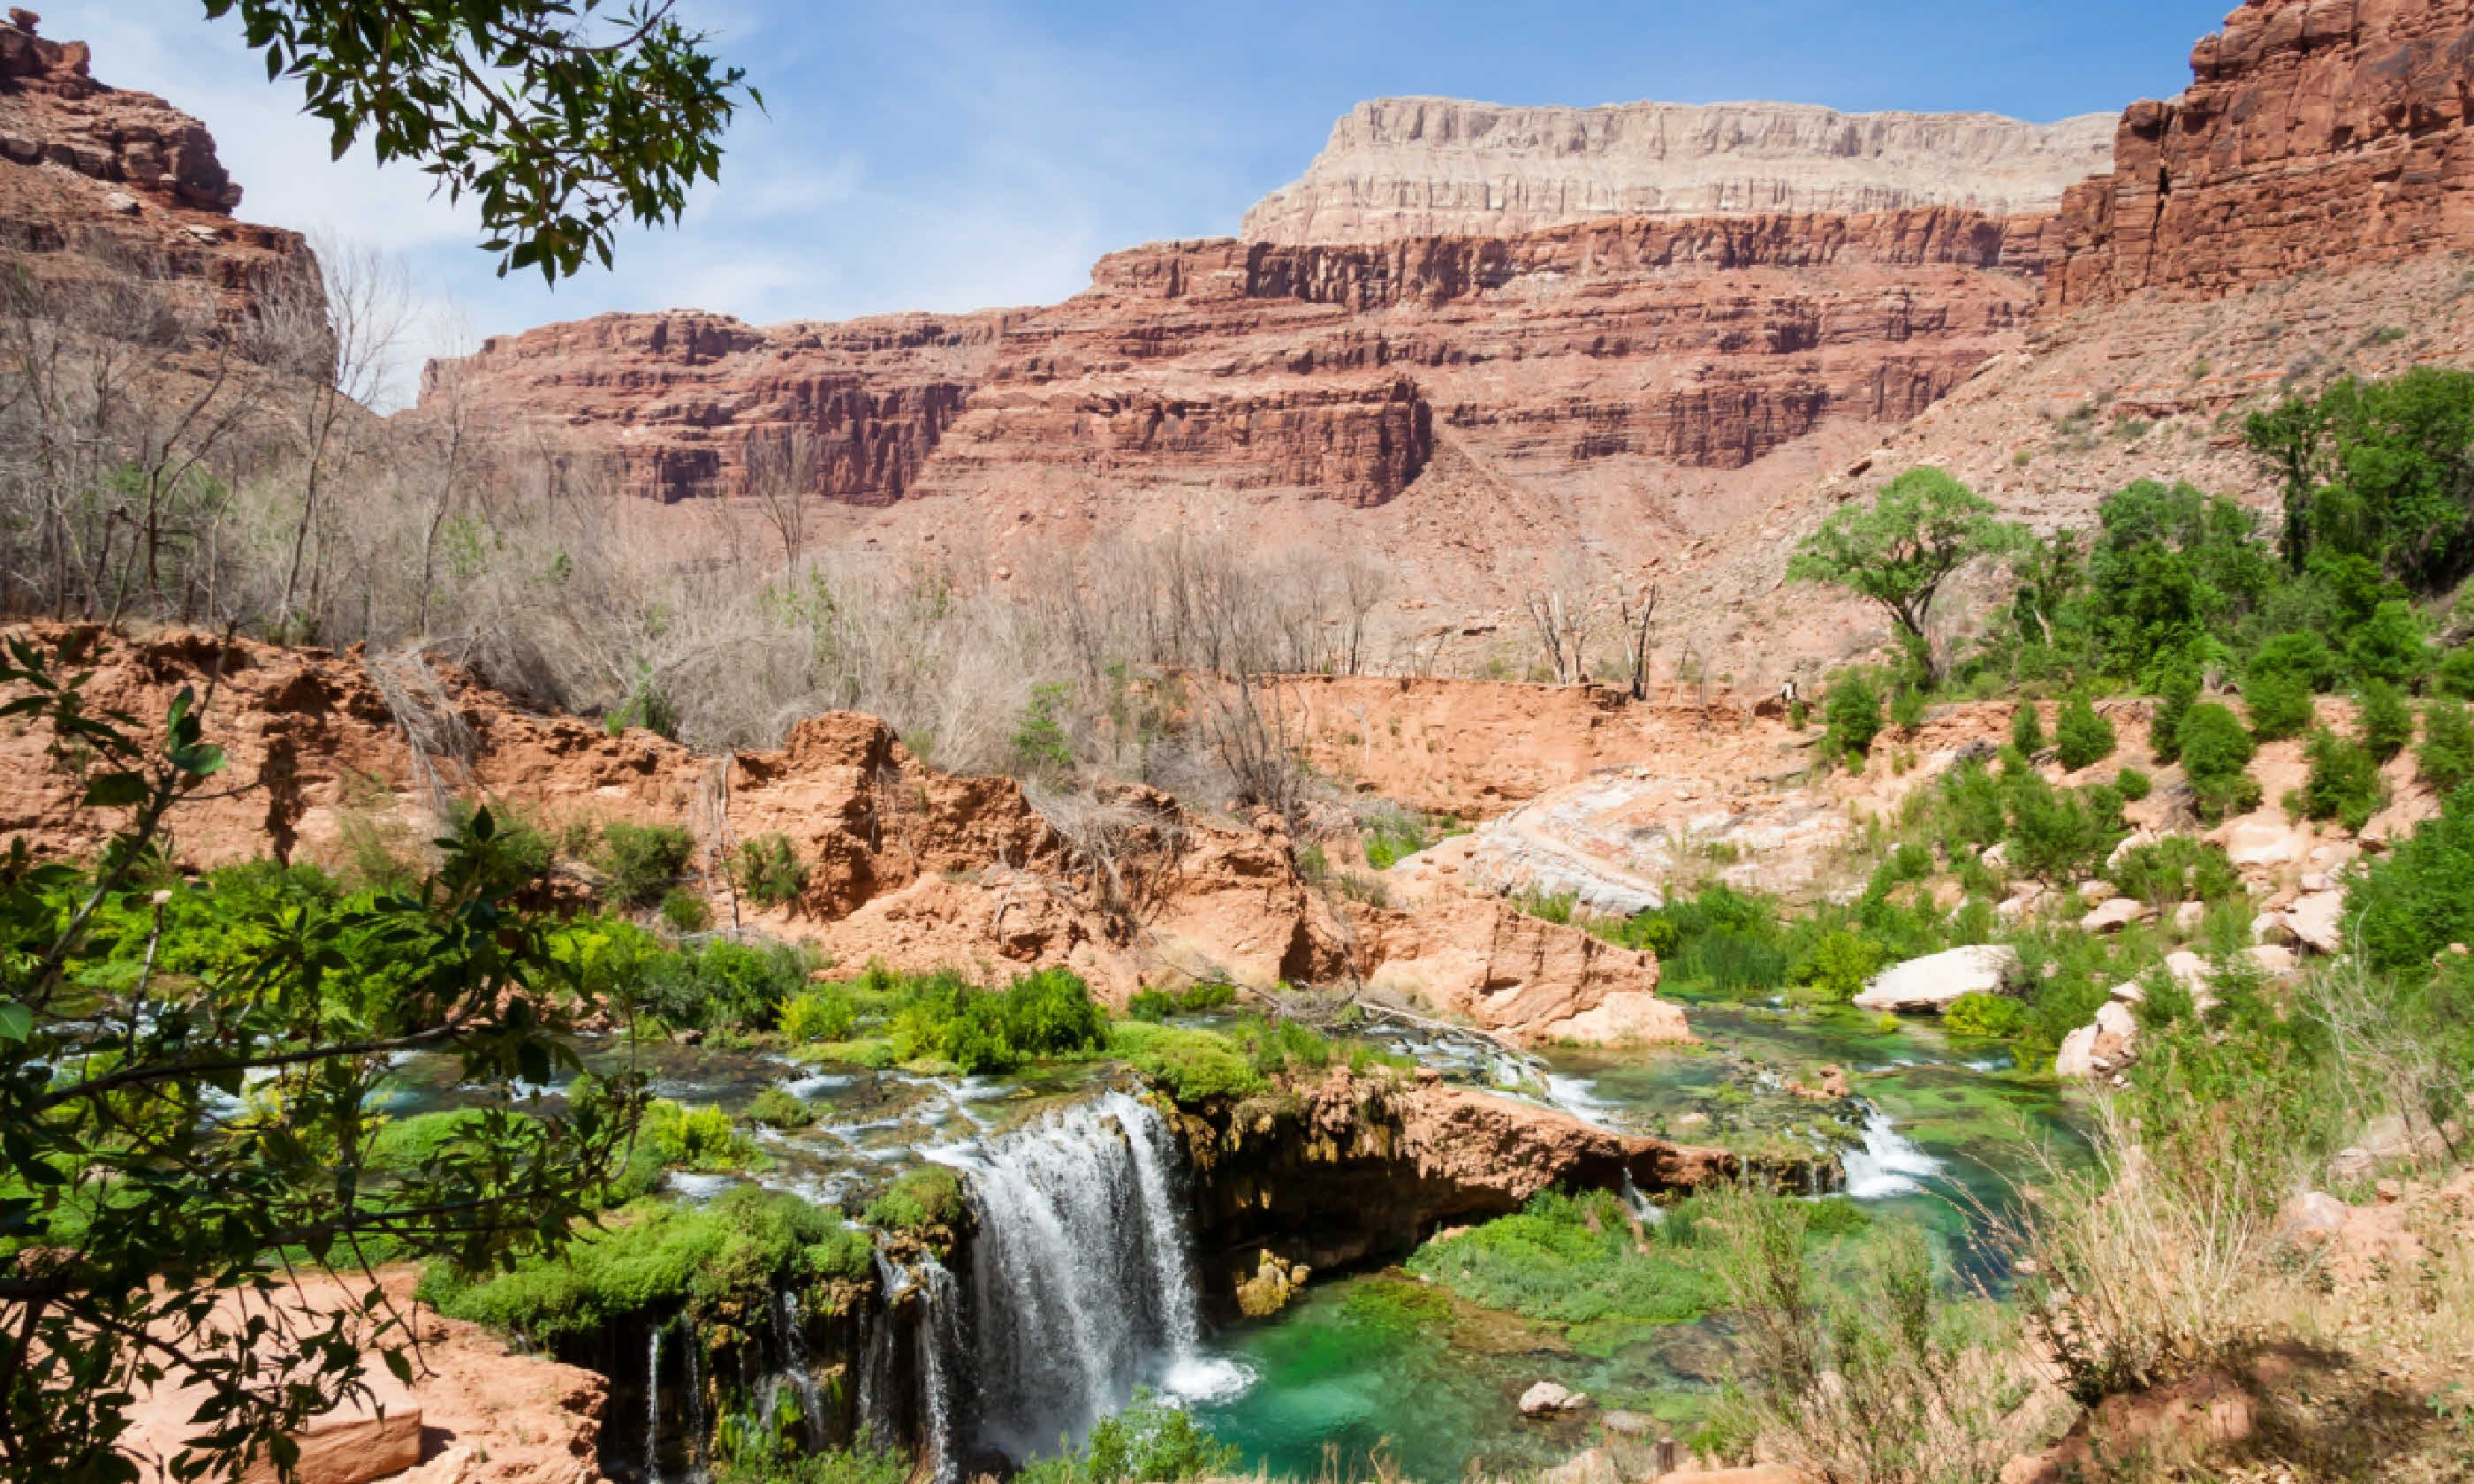 Near village of Supai, Grand Canyon (Shutterstock)